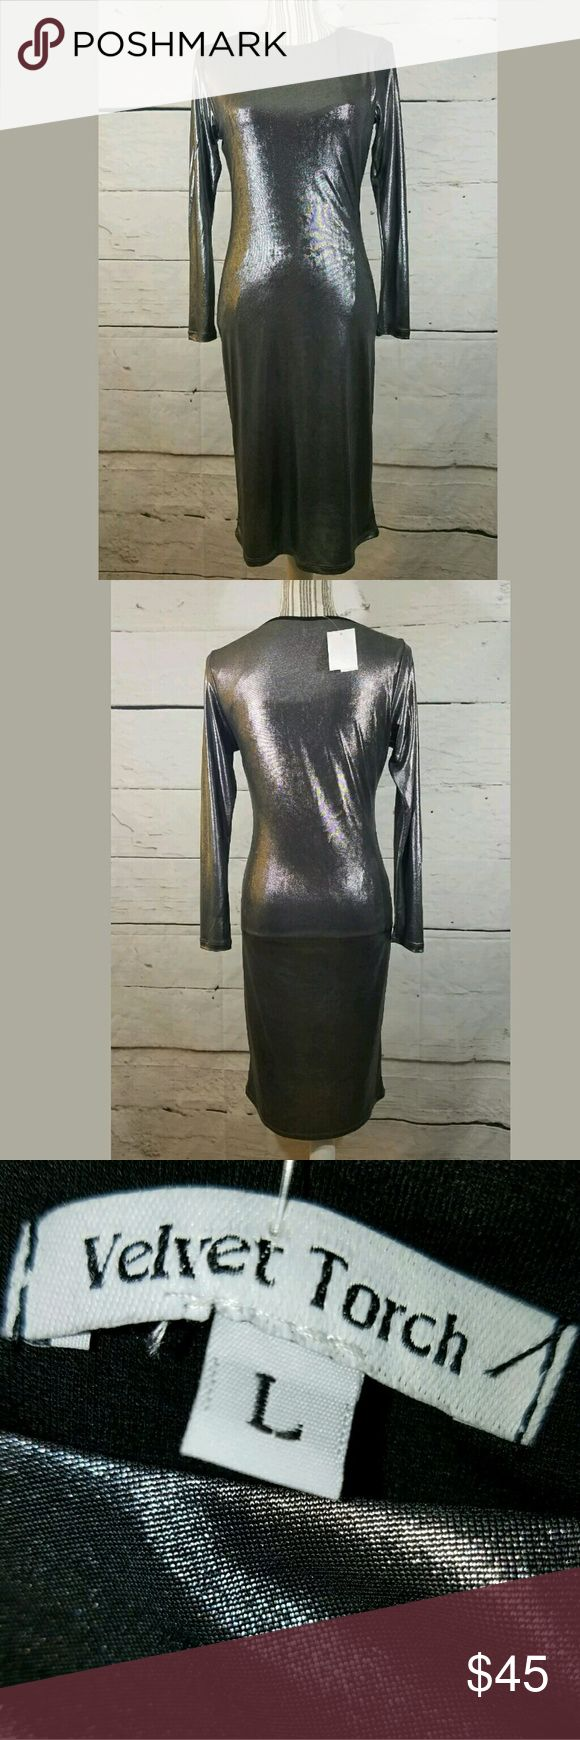 Velvet Touch Metallic Silver Bodycon Stretch Dress Velvet Touch Metallic Silver Bodycon Stretch Dress Large  Gorgeous dress. Fully lined.  17 inches pit to pit.  28 inch waist.  Hips stretch up to 50 inches.  41.5 inches long.    LB Velvet Torch Dresses